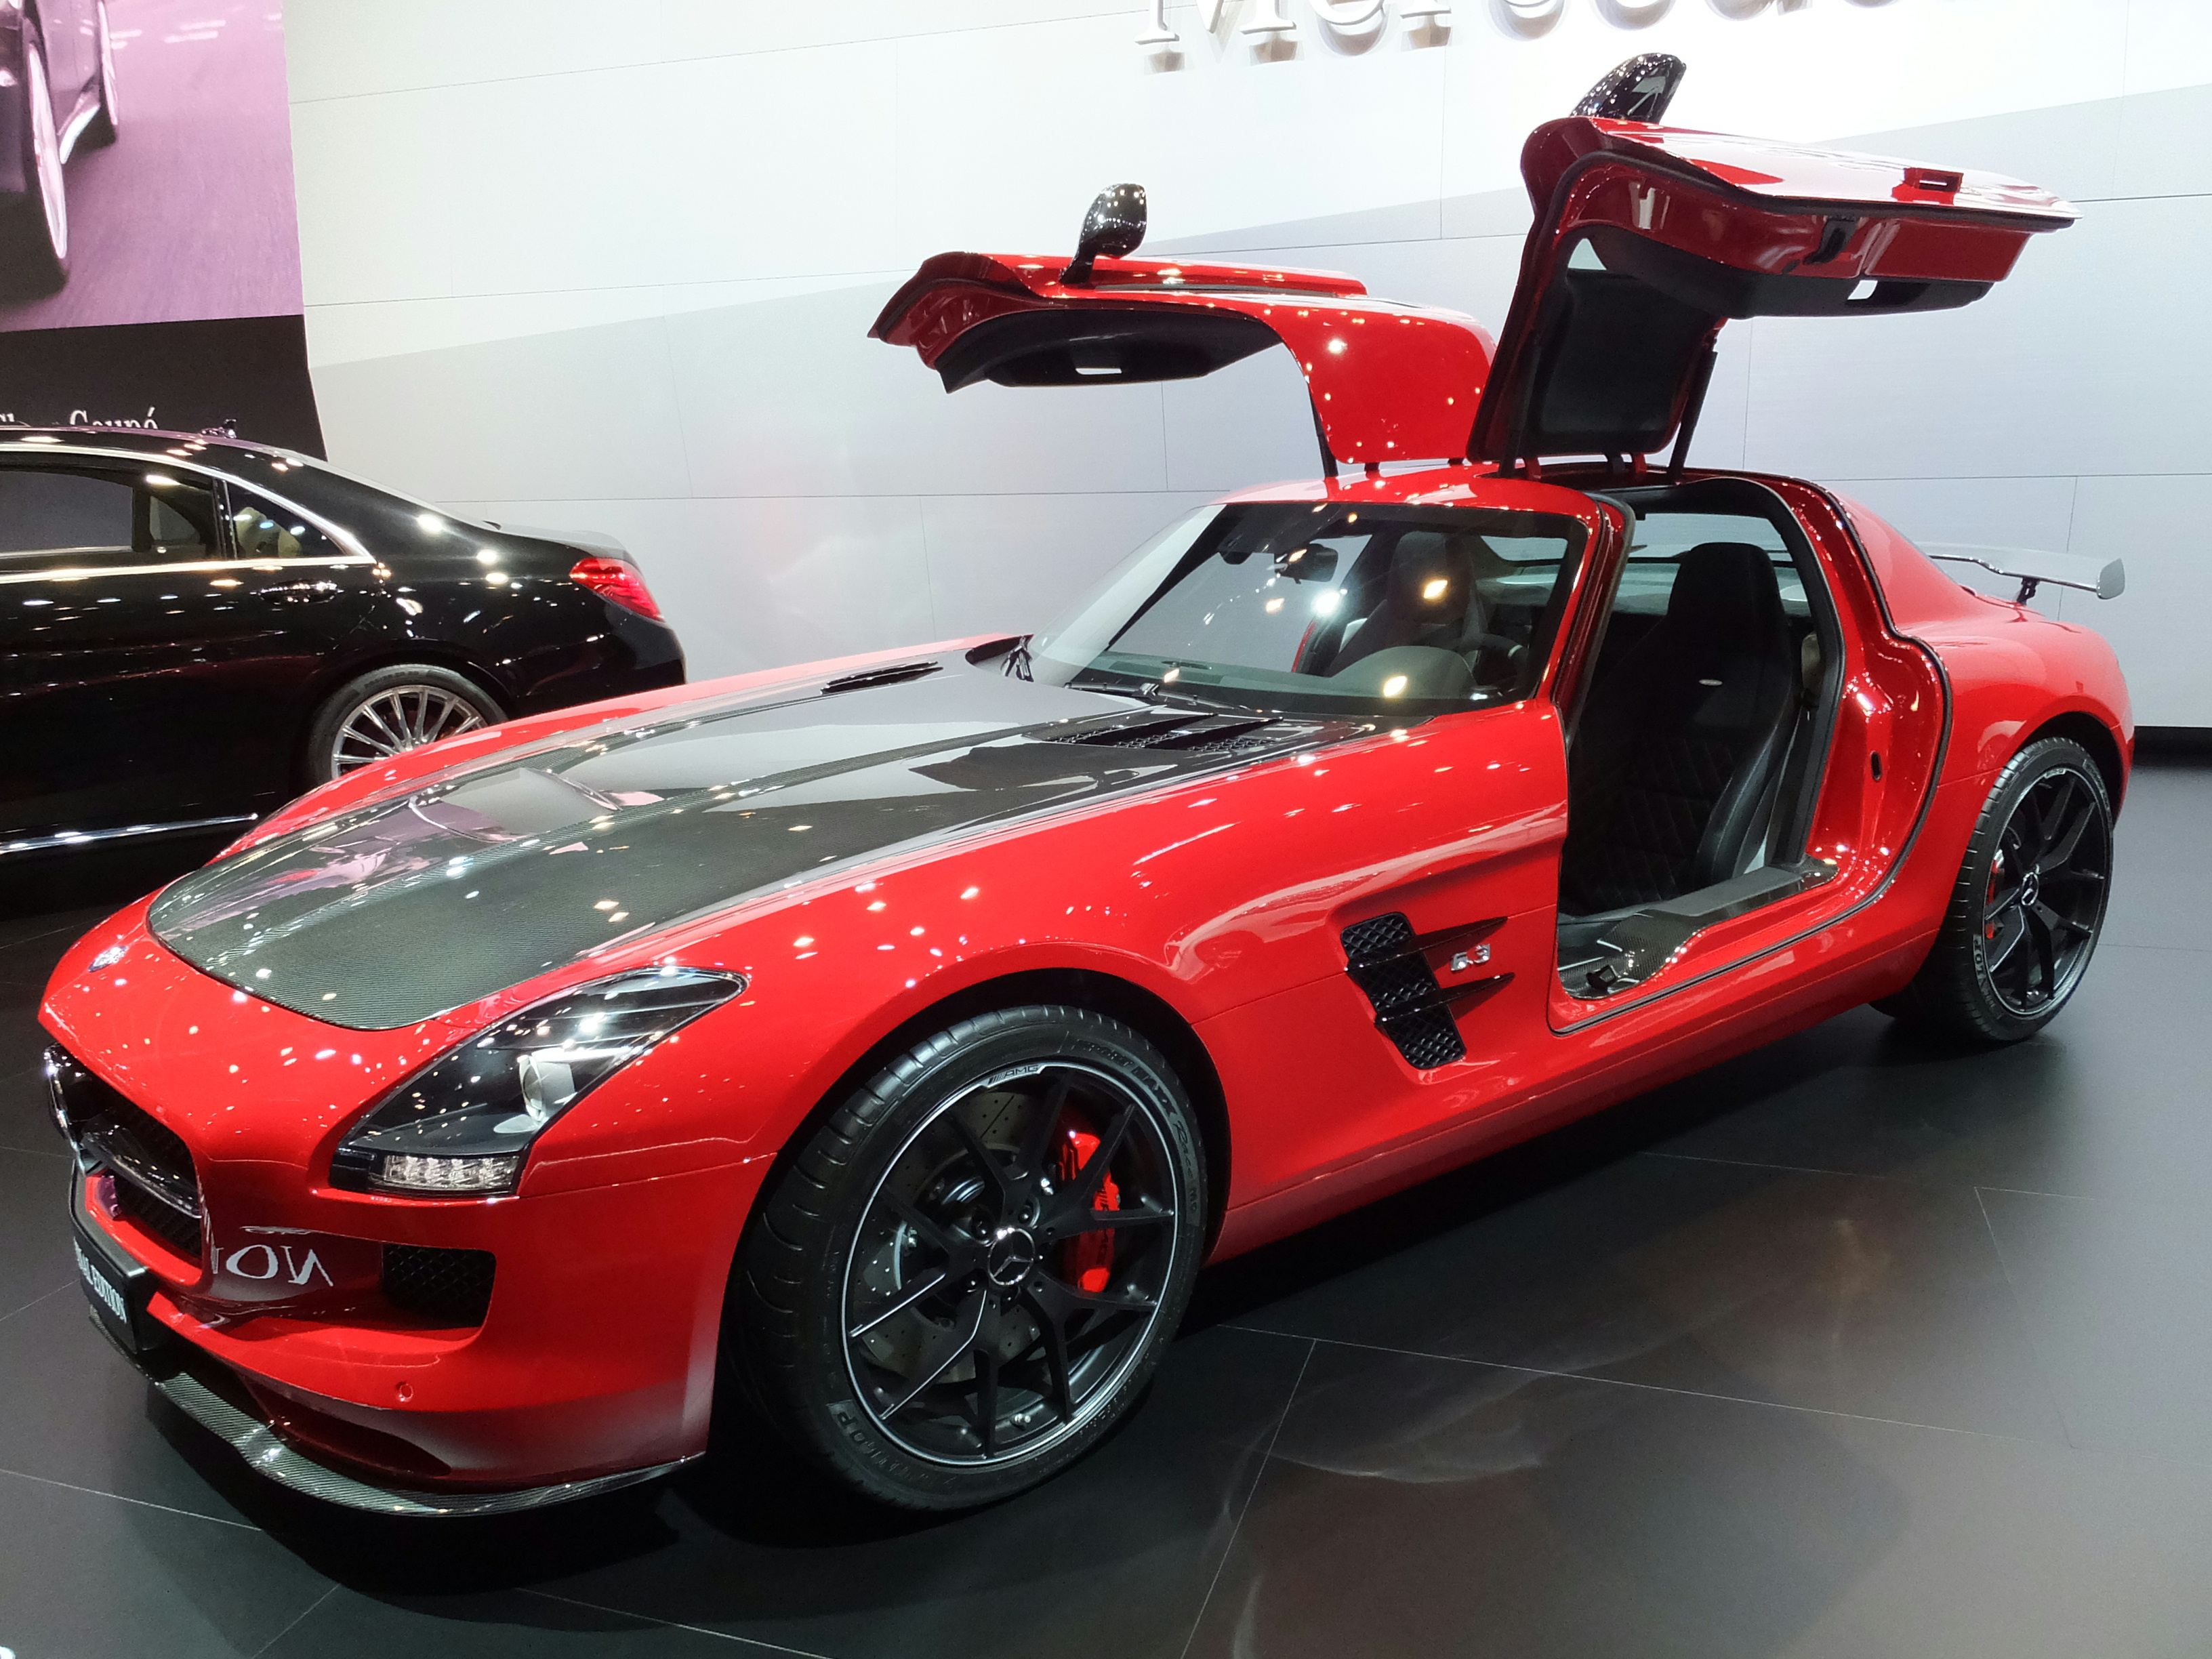 Mercedes-Benz Sls Amg Gt Final Edition #11